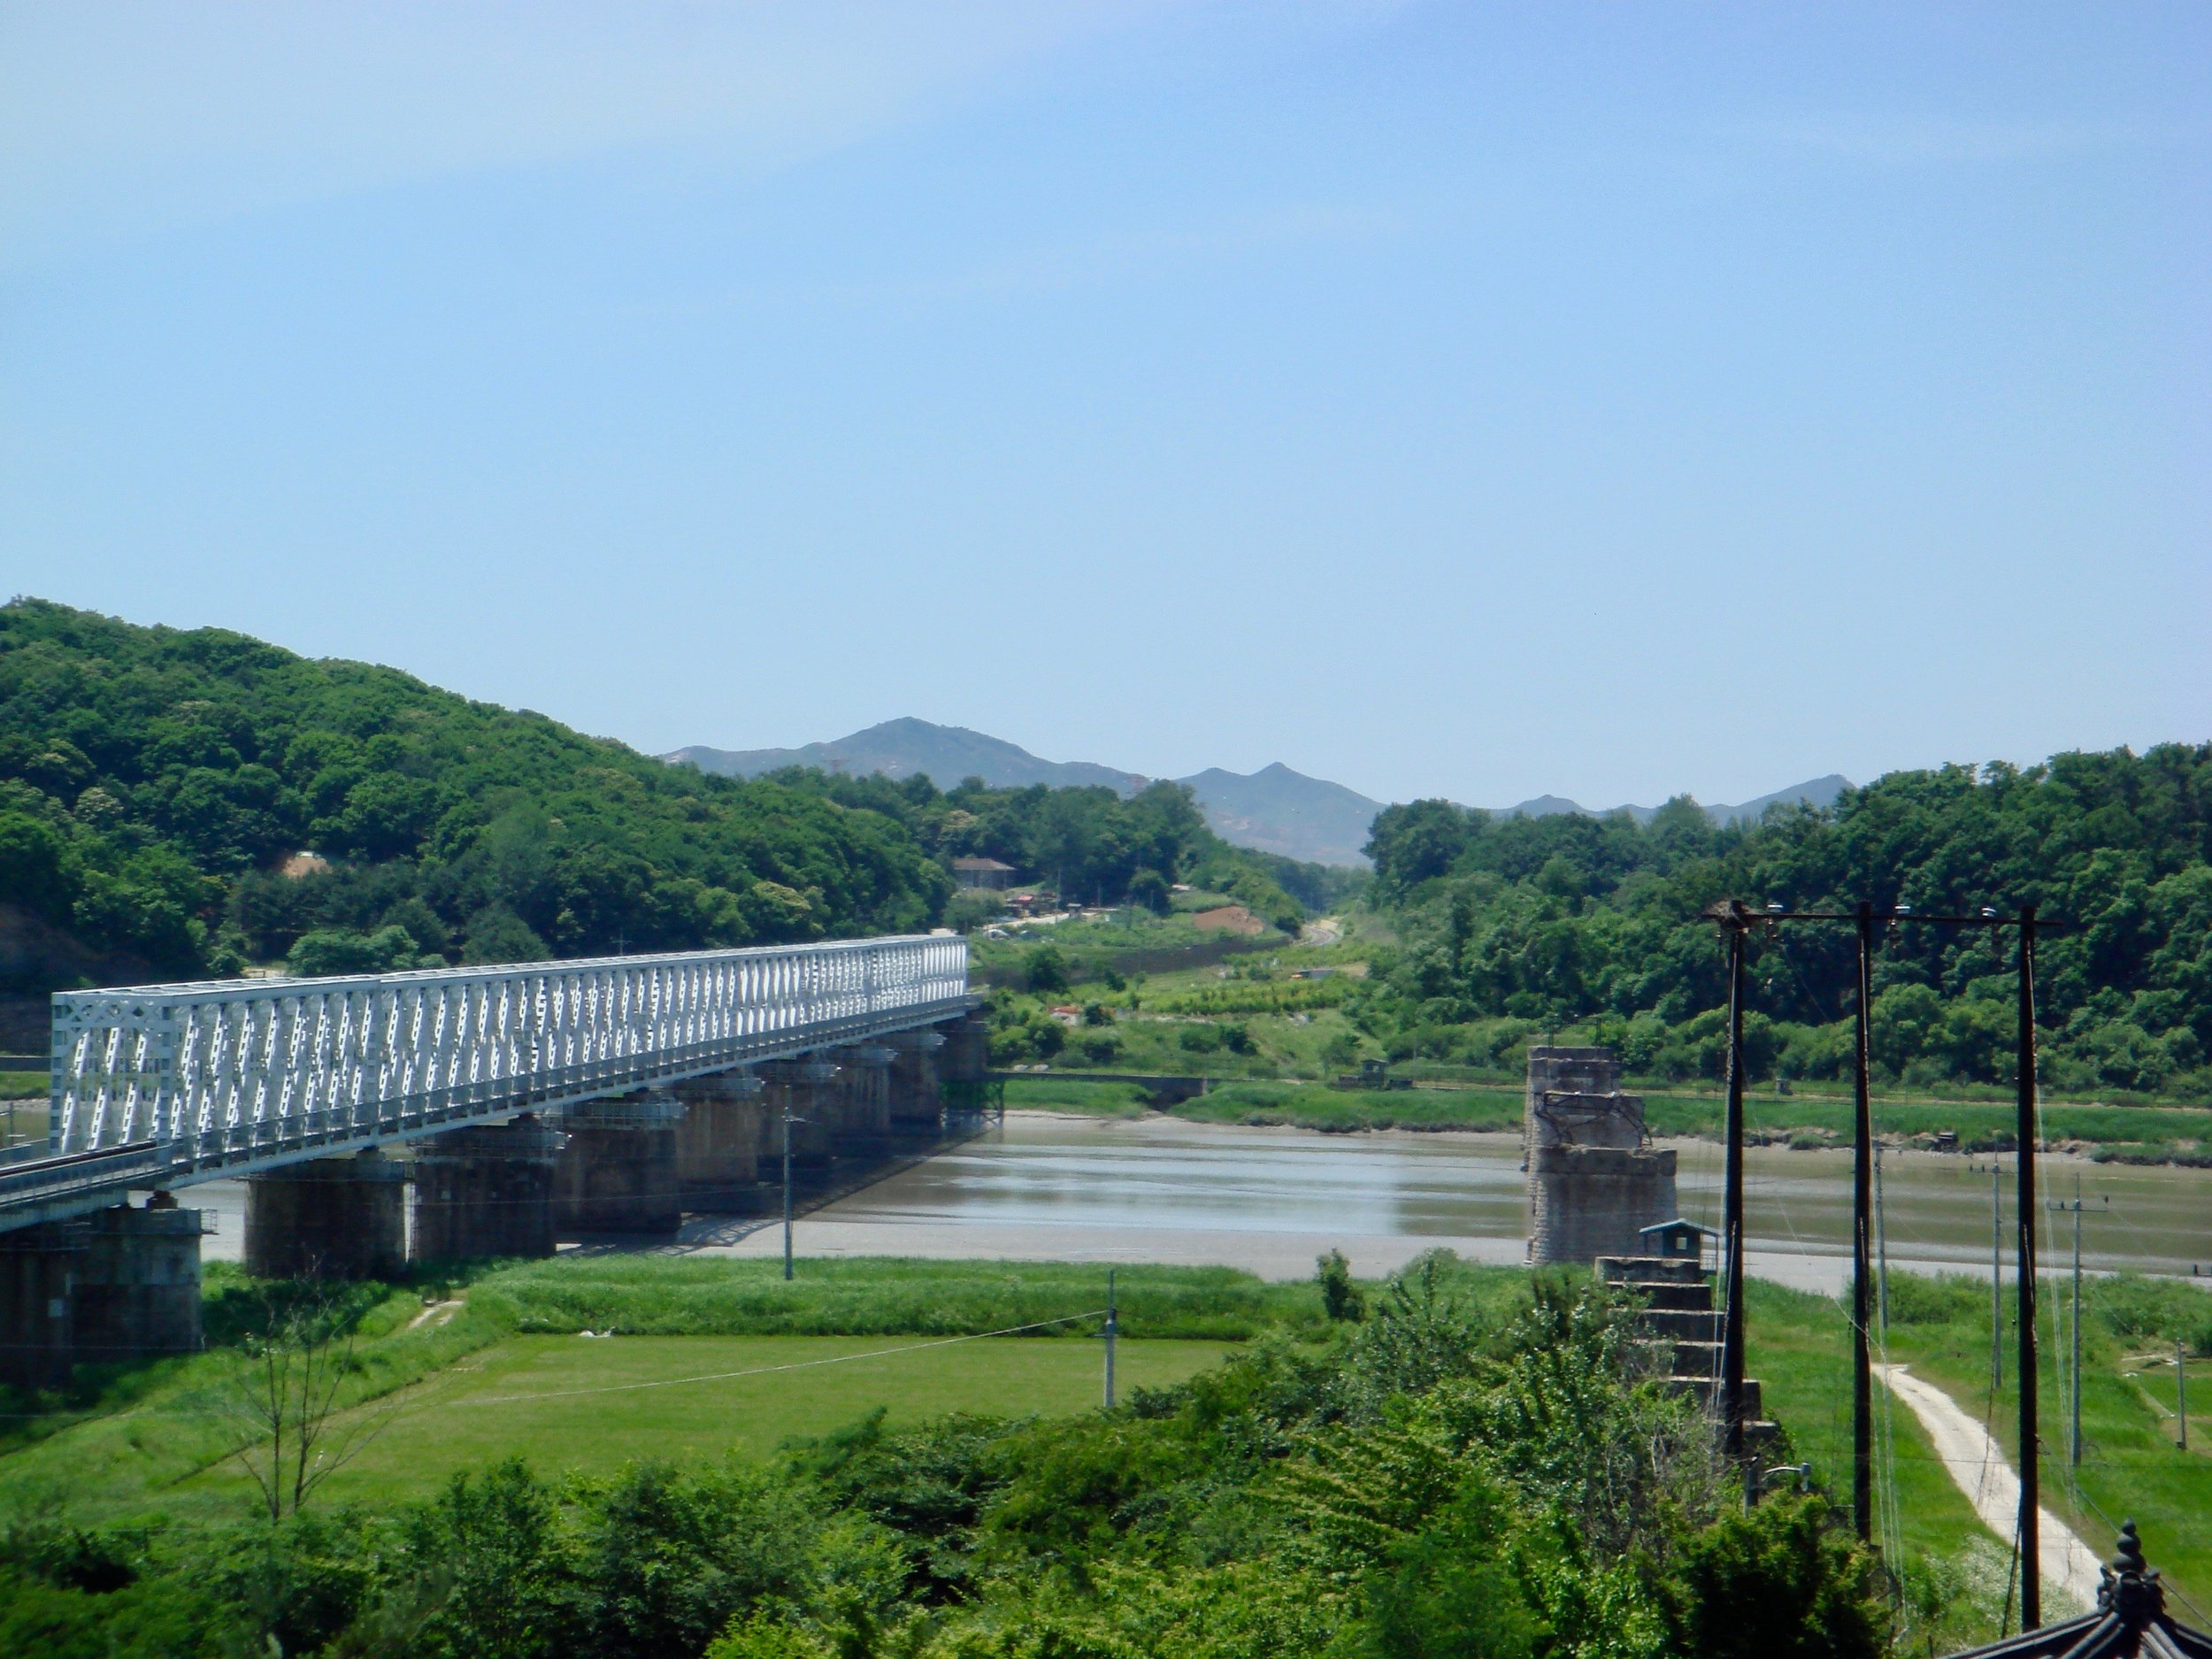 The Freedom Bridge crossing the Imjin River is one of the few physical connections between the two Koreas. The far bank of the river is the North Korean side of the DMZ.